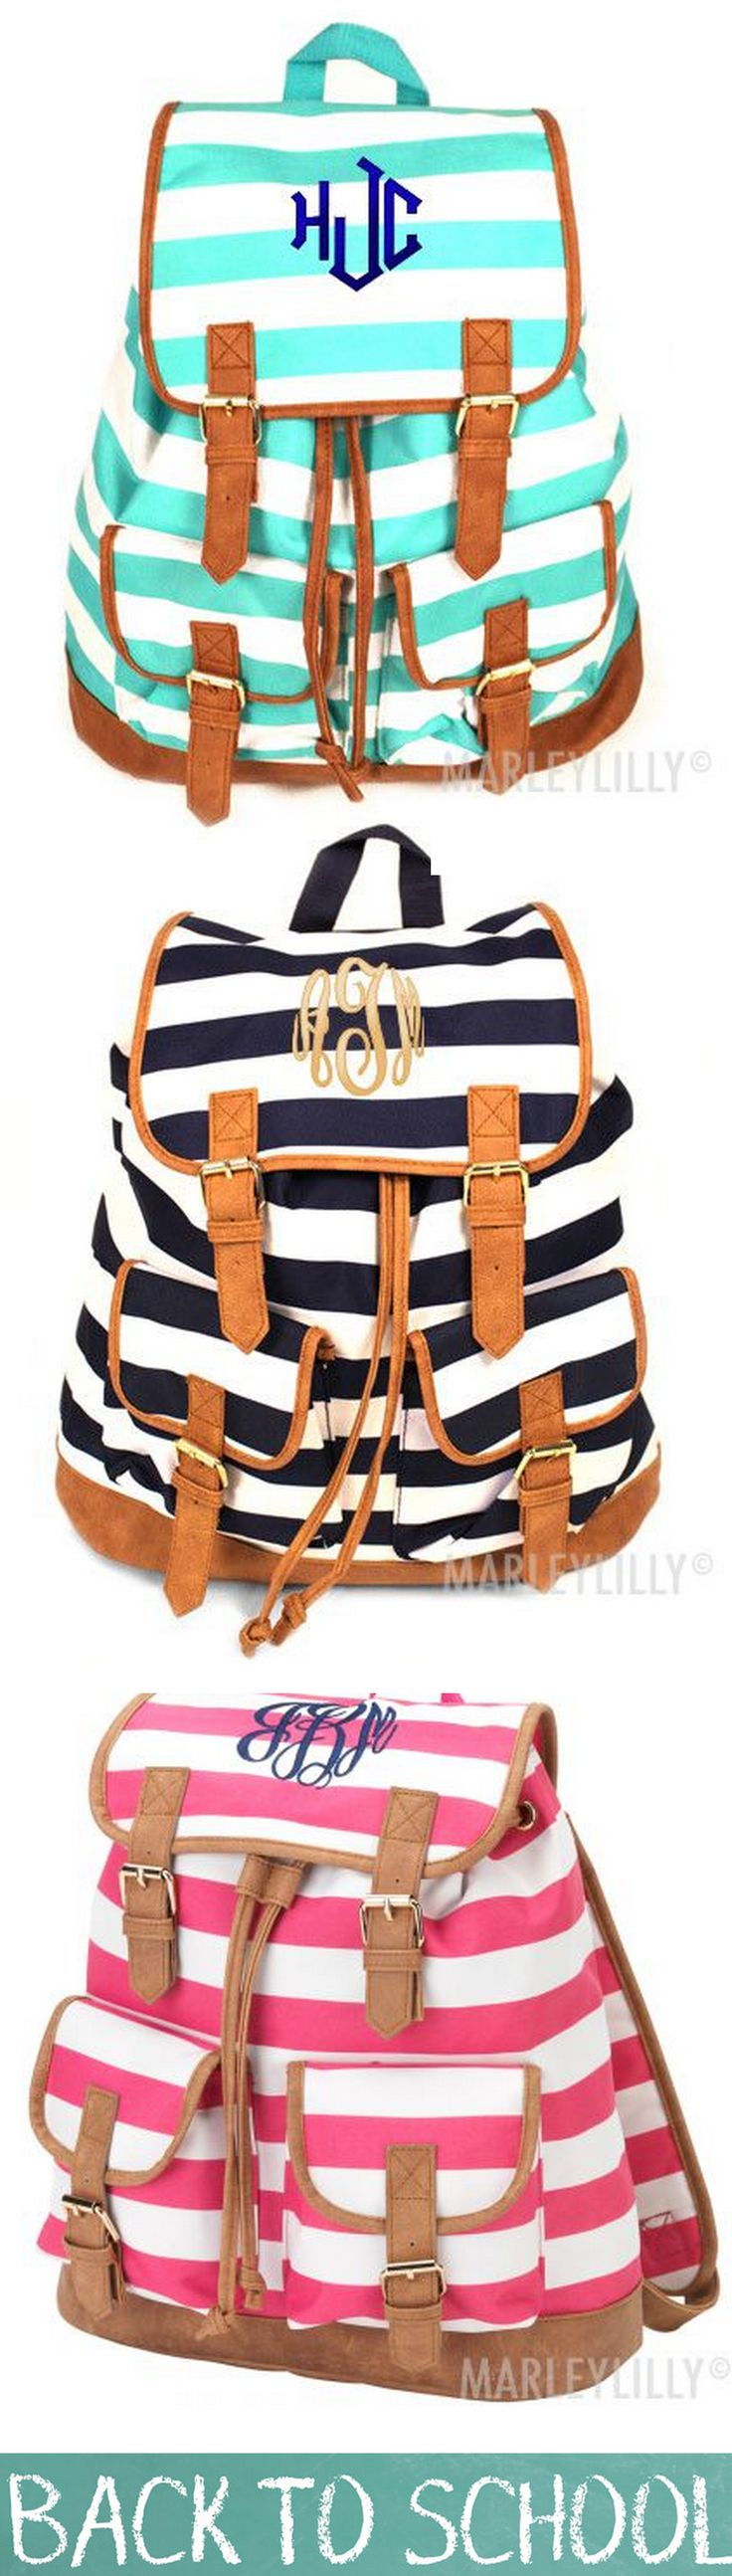 25  best ideas about School backpacks on Pinterest | School bags ...